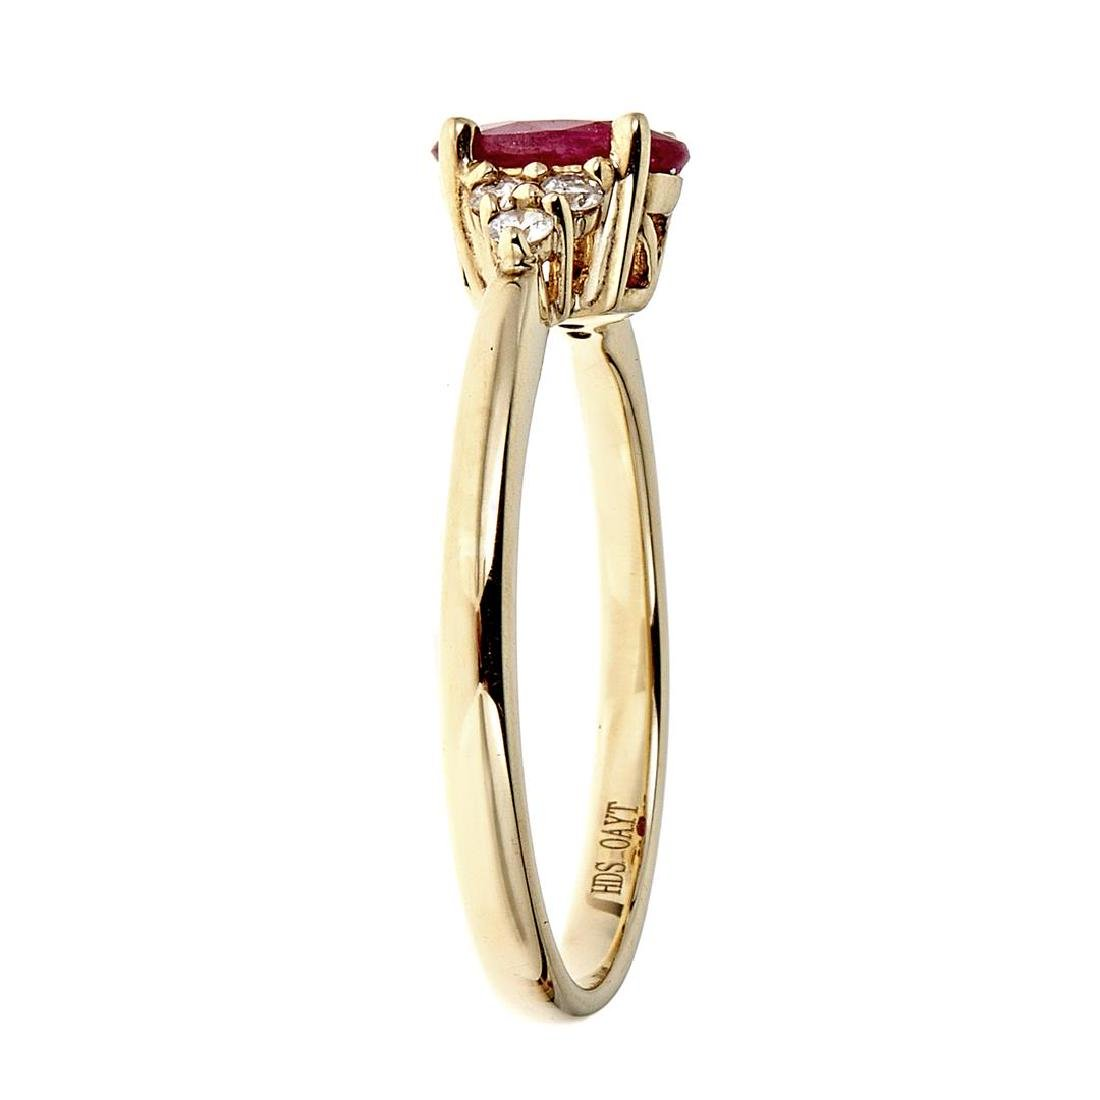 0.82 ctw Ruby and Diamond Ring - 10KT Yellow Gold - 2